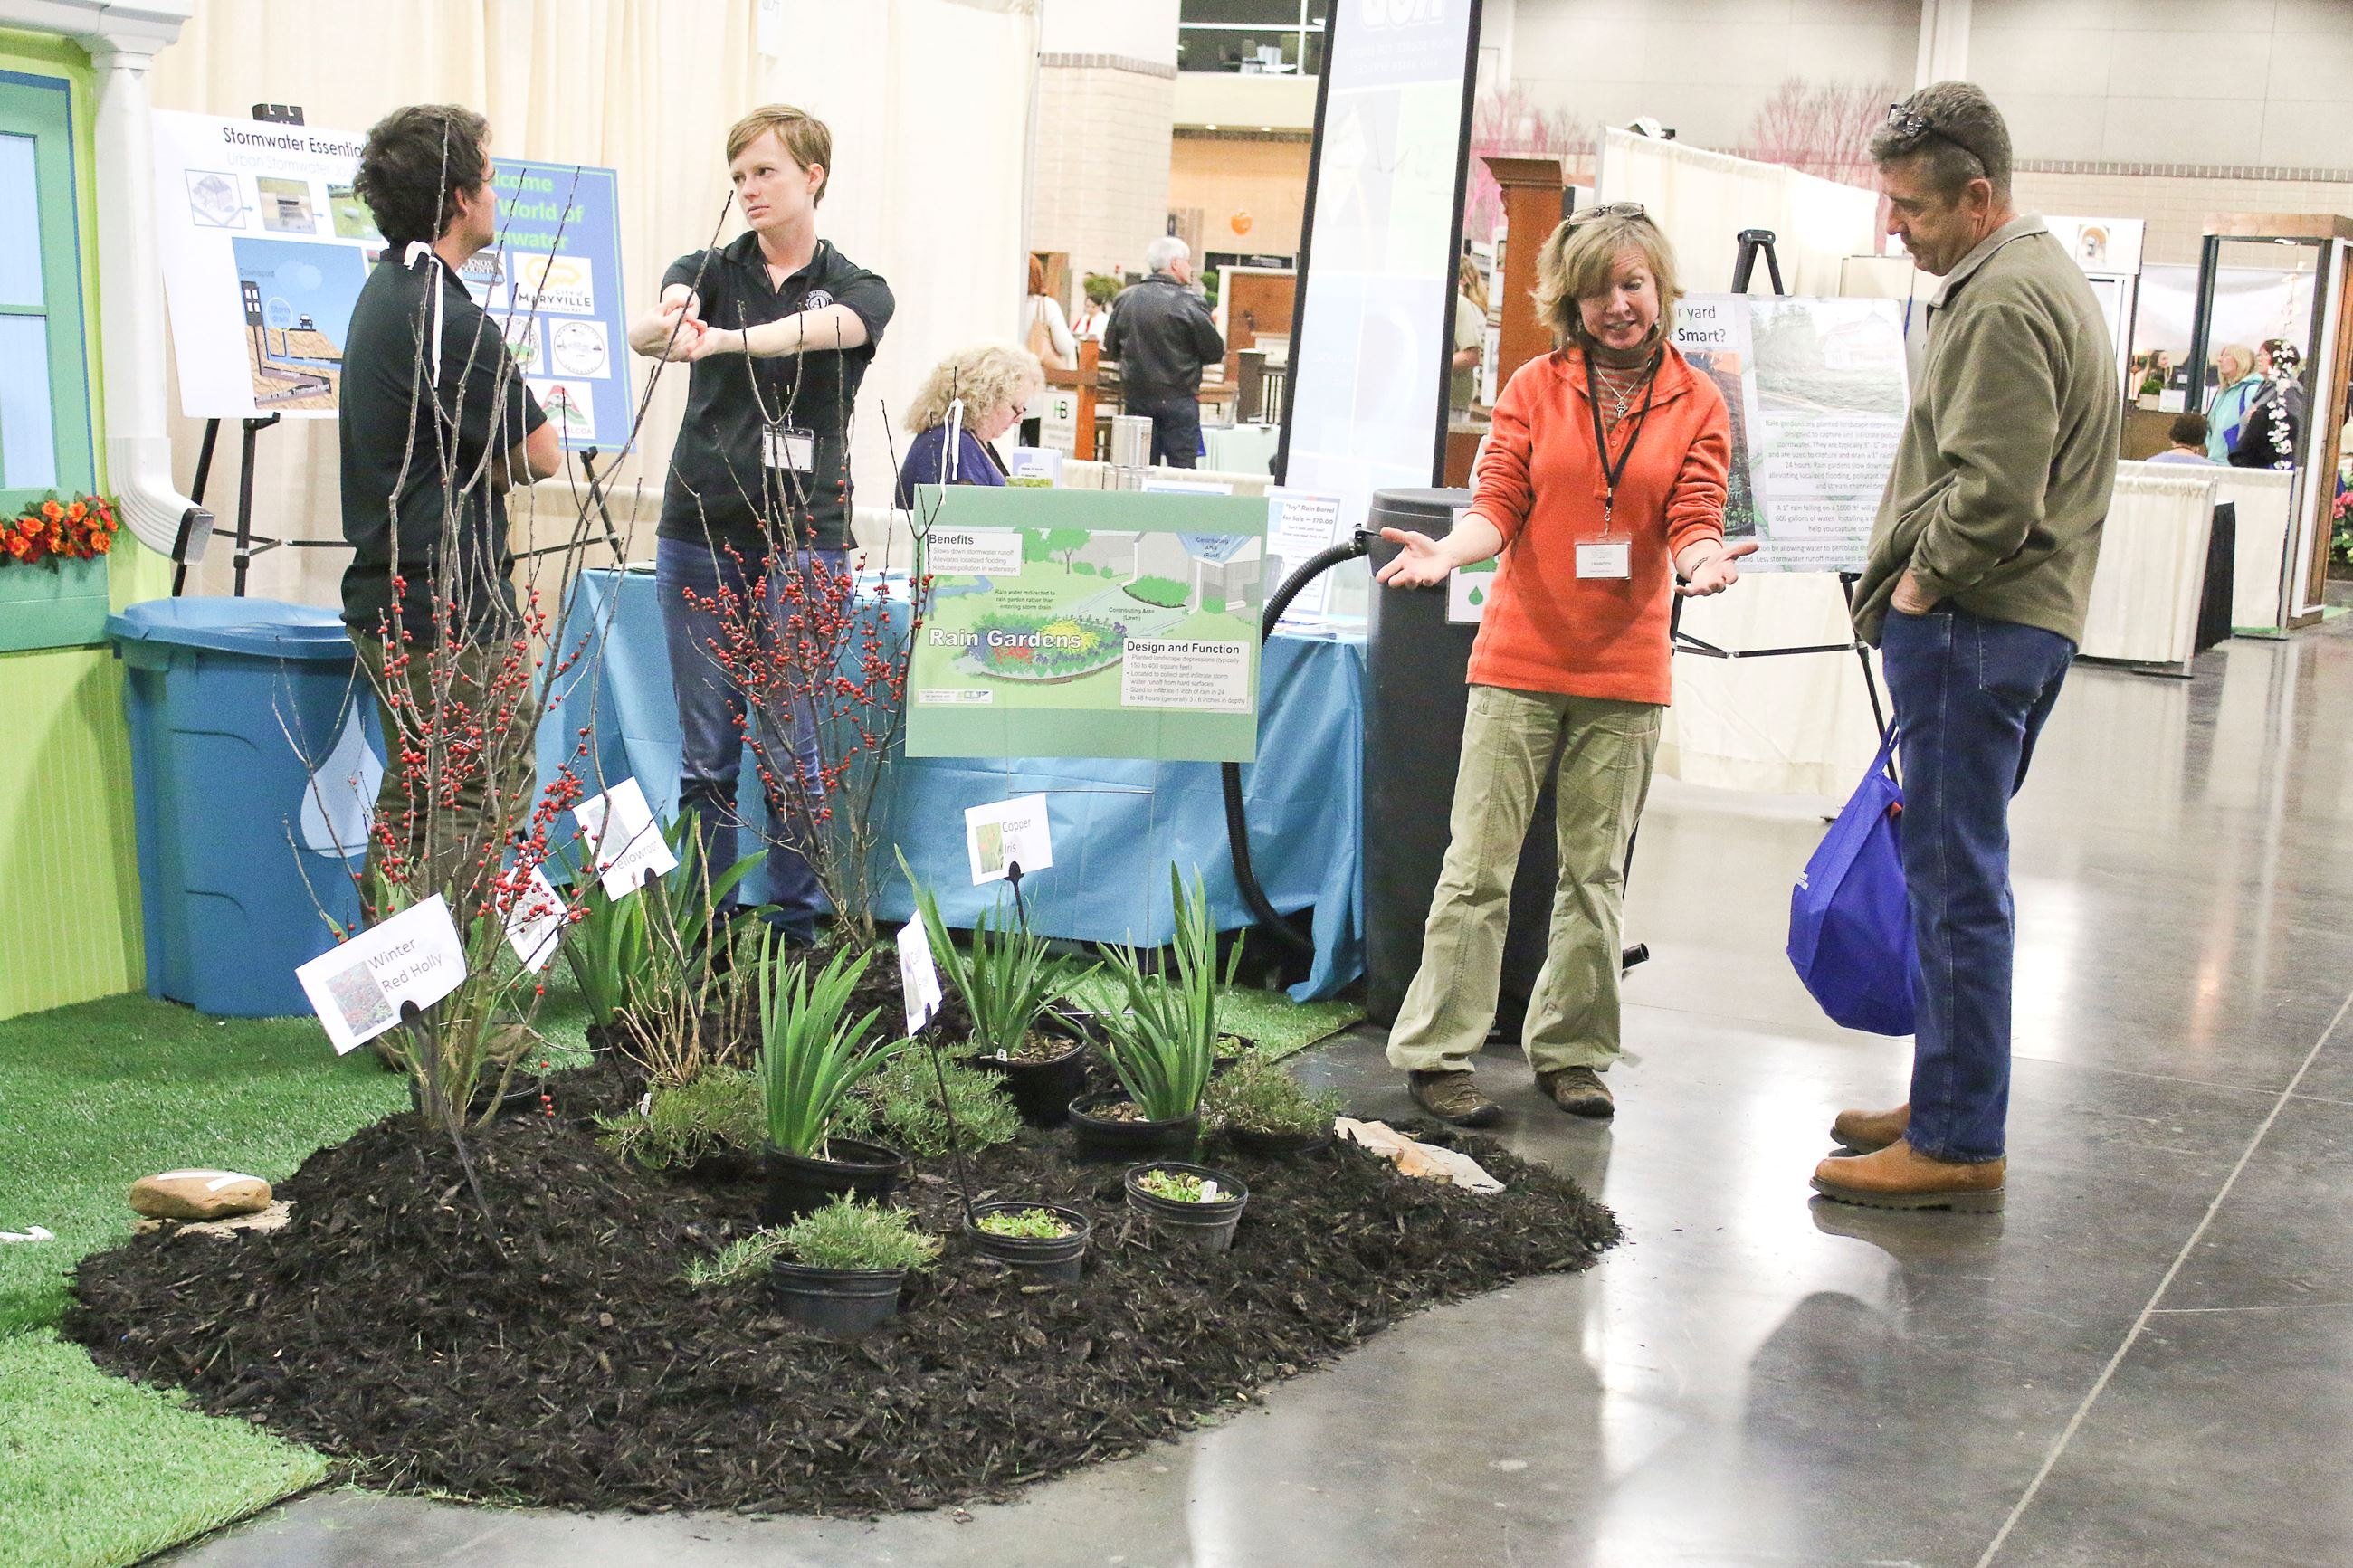 Woman speaking to event attendee about the rain garden display